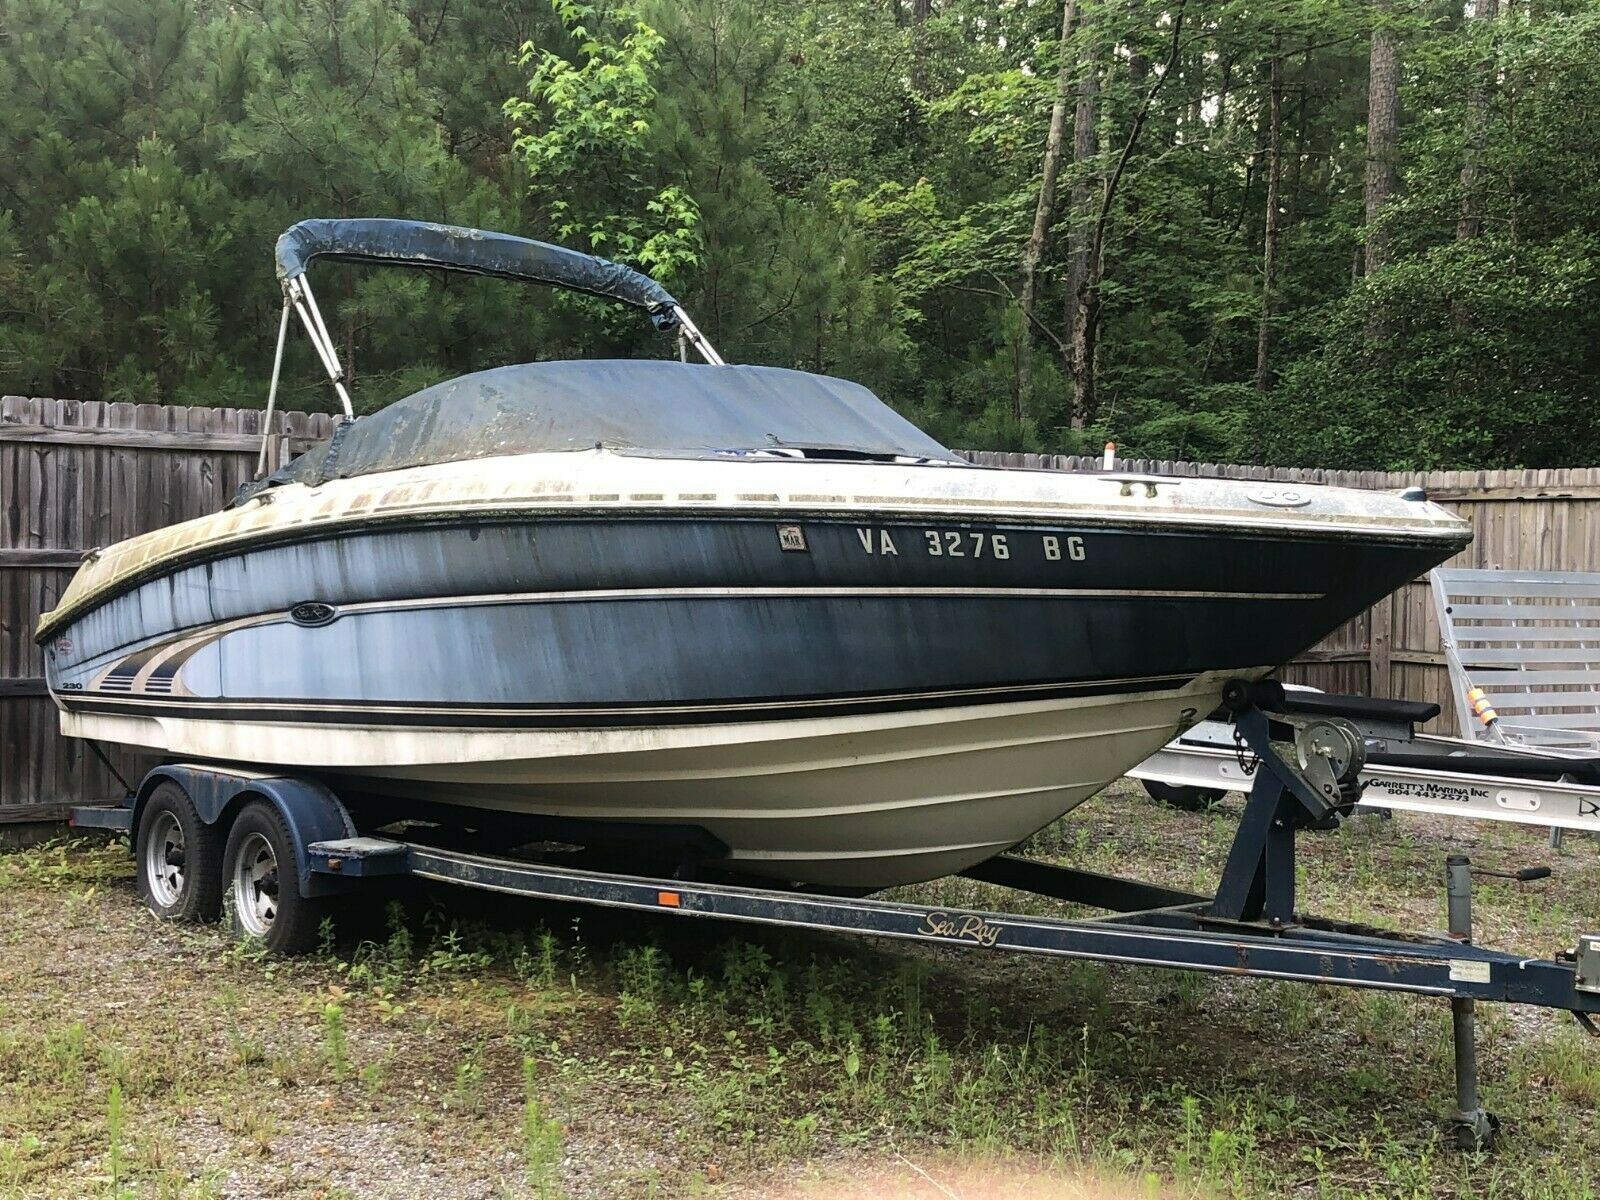 2001 Sea Ray 230BR 23' Bowrider & Trailer - Virginia